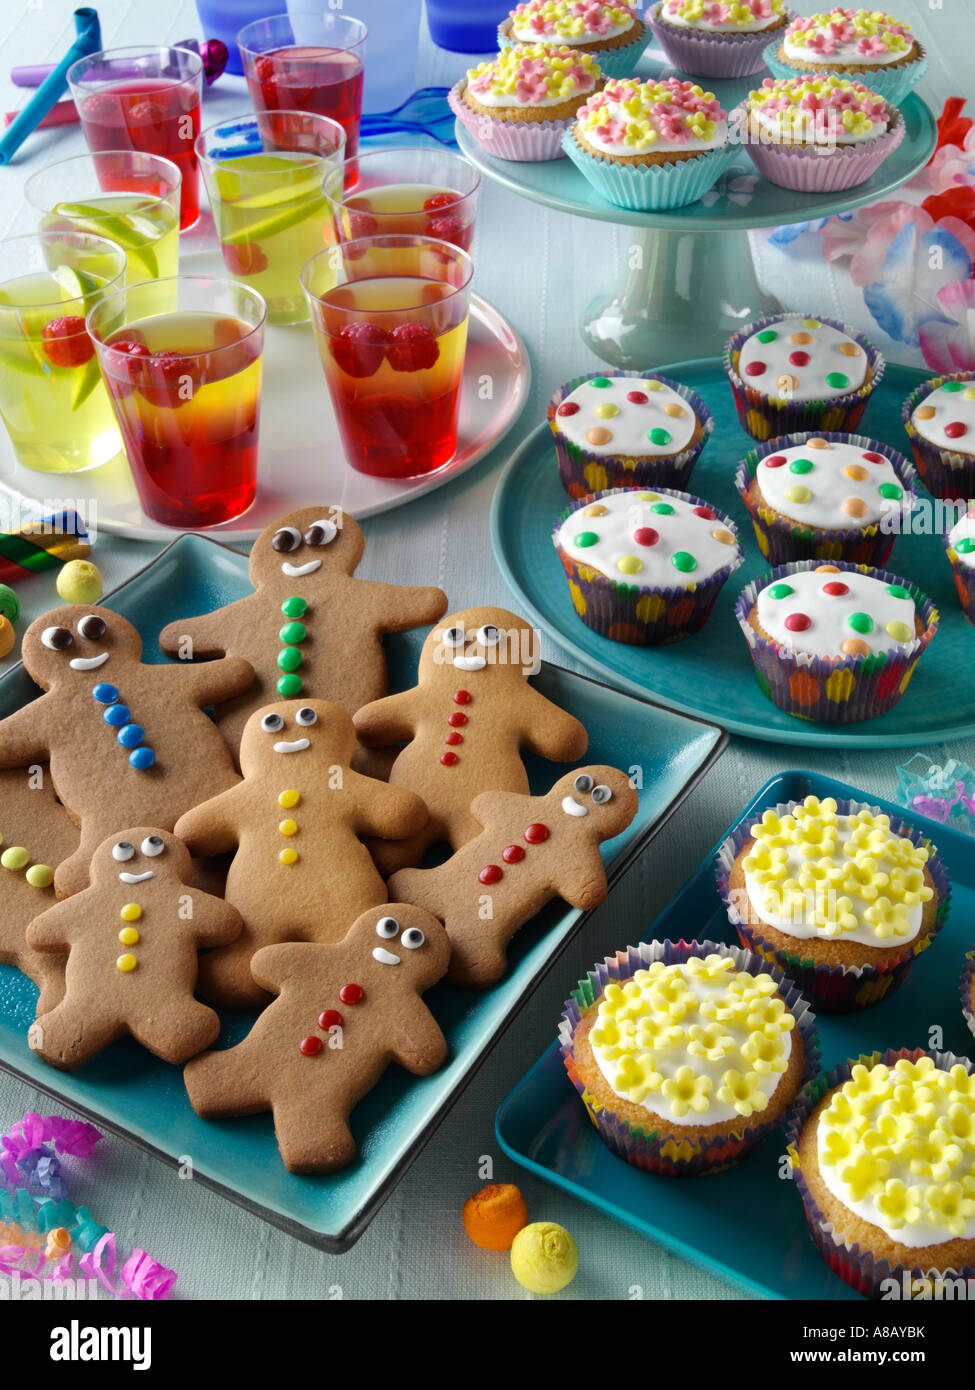 Kids party food spread editorial food - Stock Image